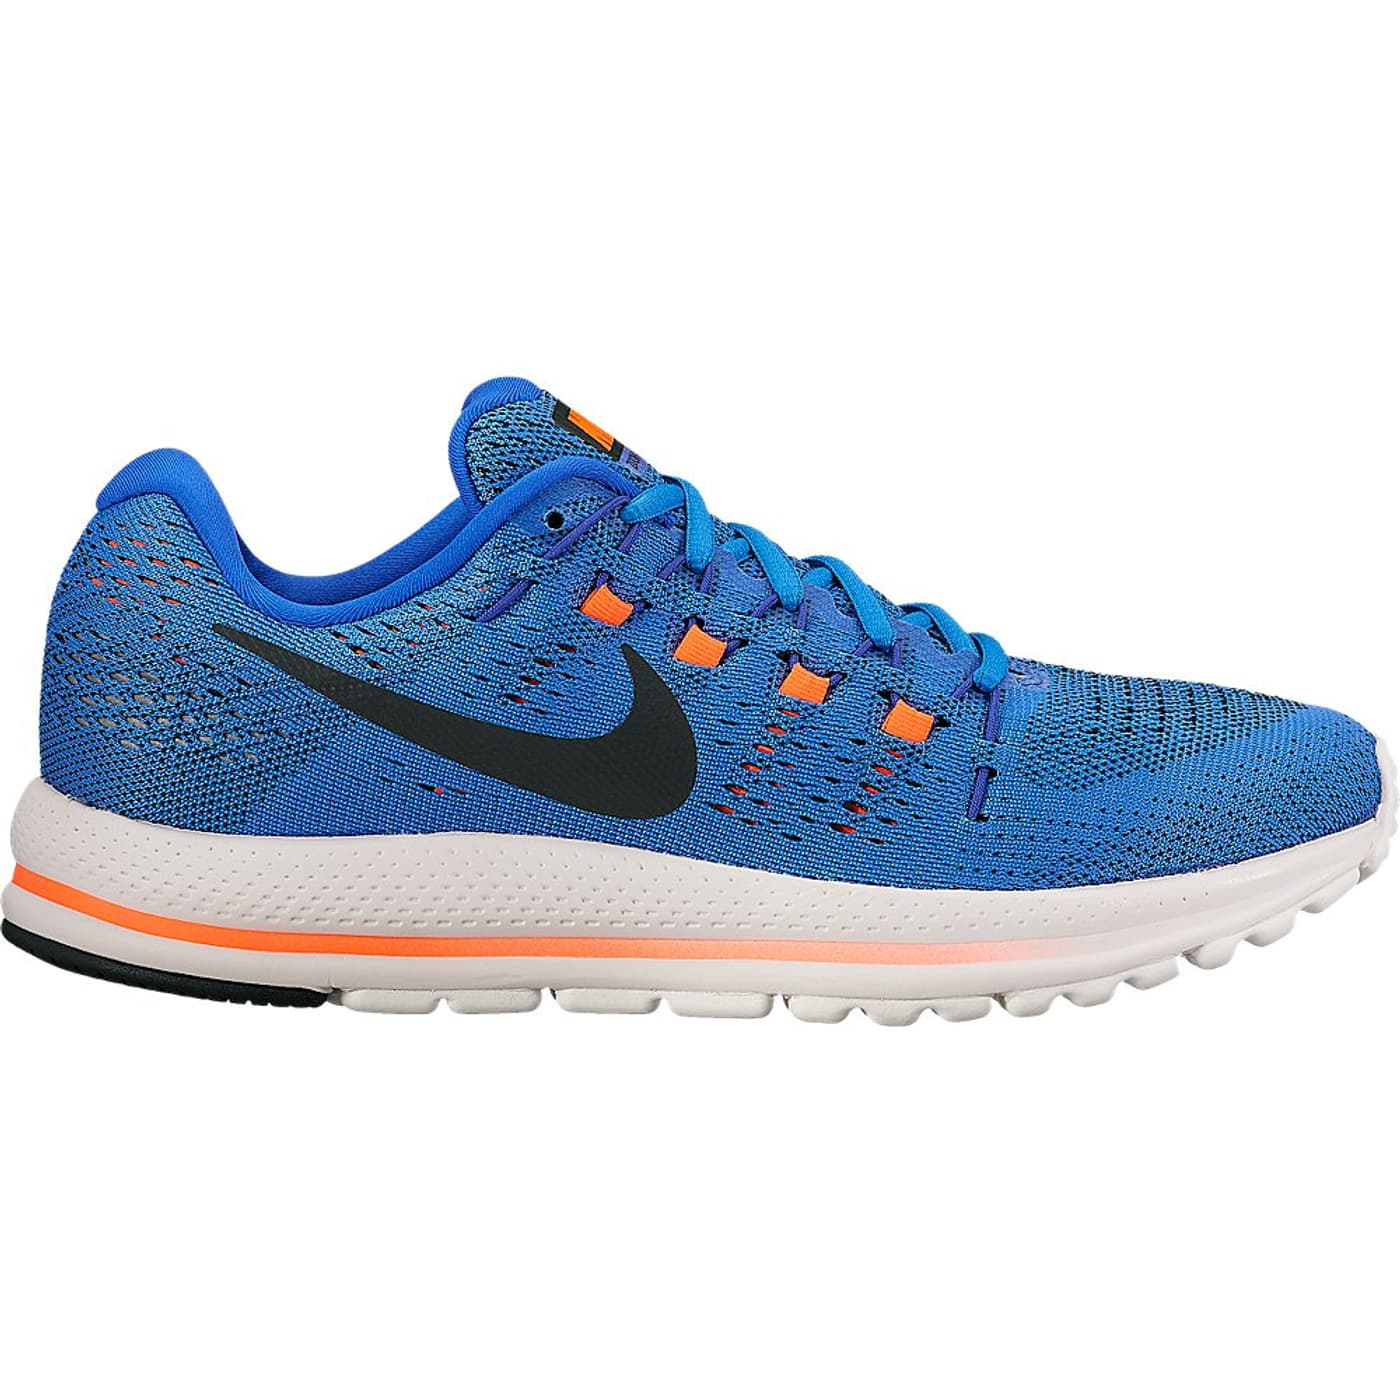 low priced eba8f 2f22e Nike Zoom Vomero 12 Chaussures de course pour homme